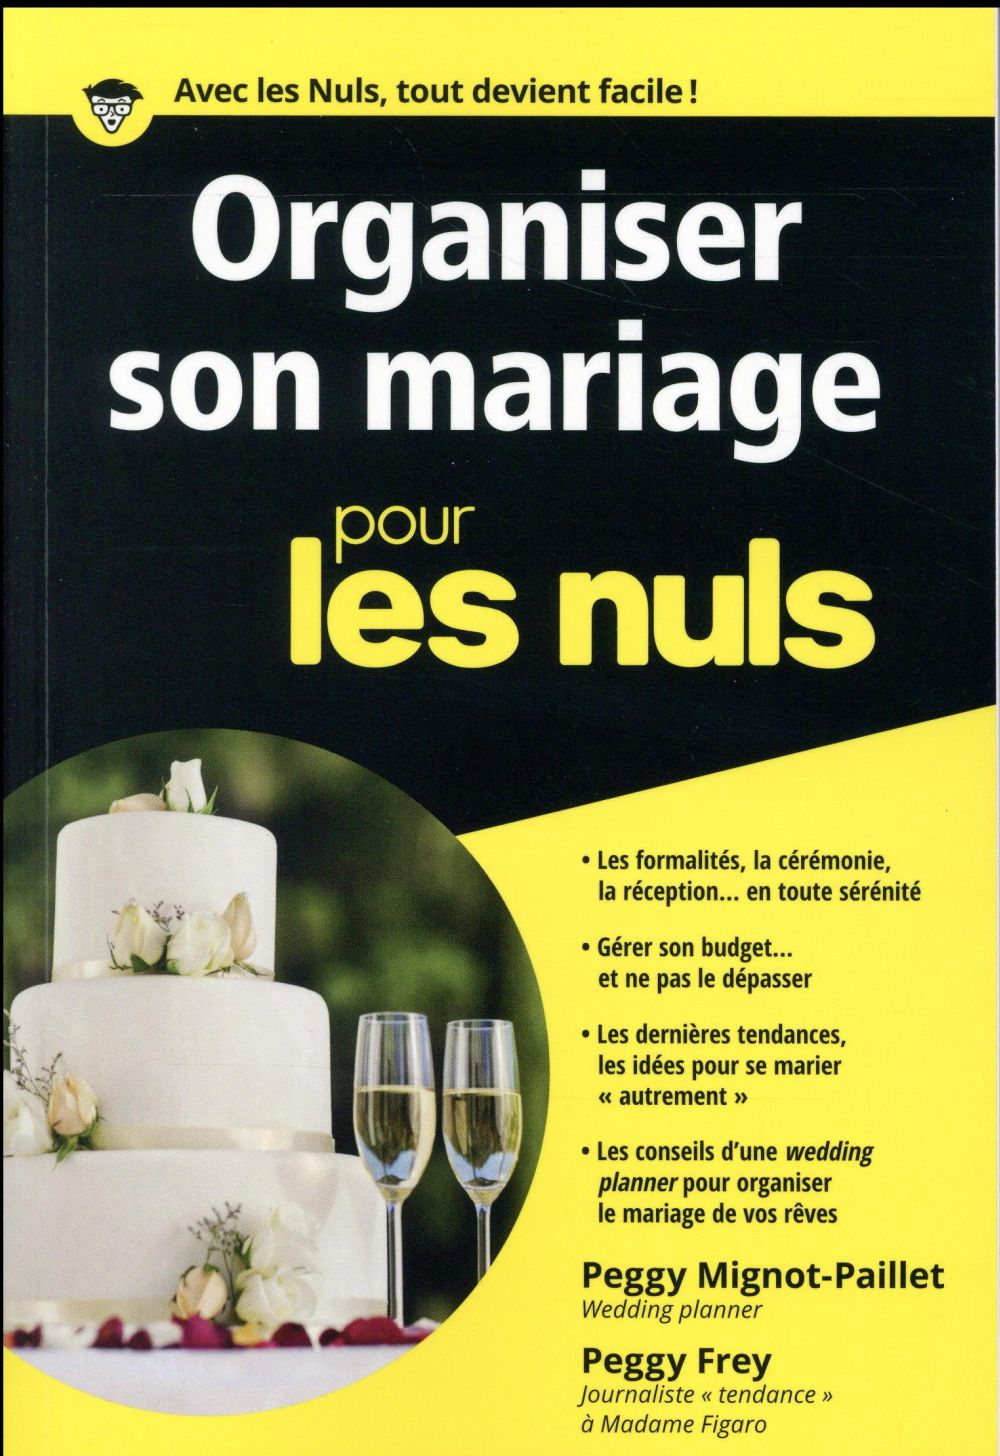 ORGANISER SON MARIAGE POCHE POUR LES NULS Frey Peggy First Editions